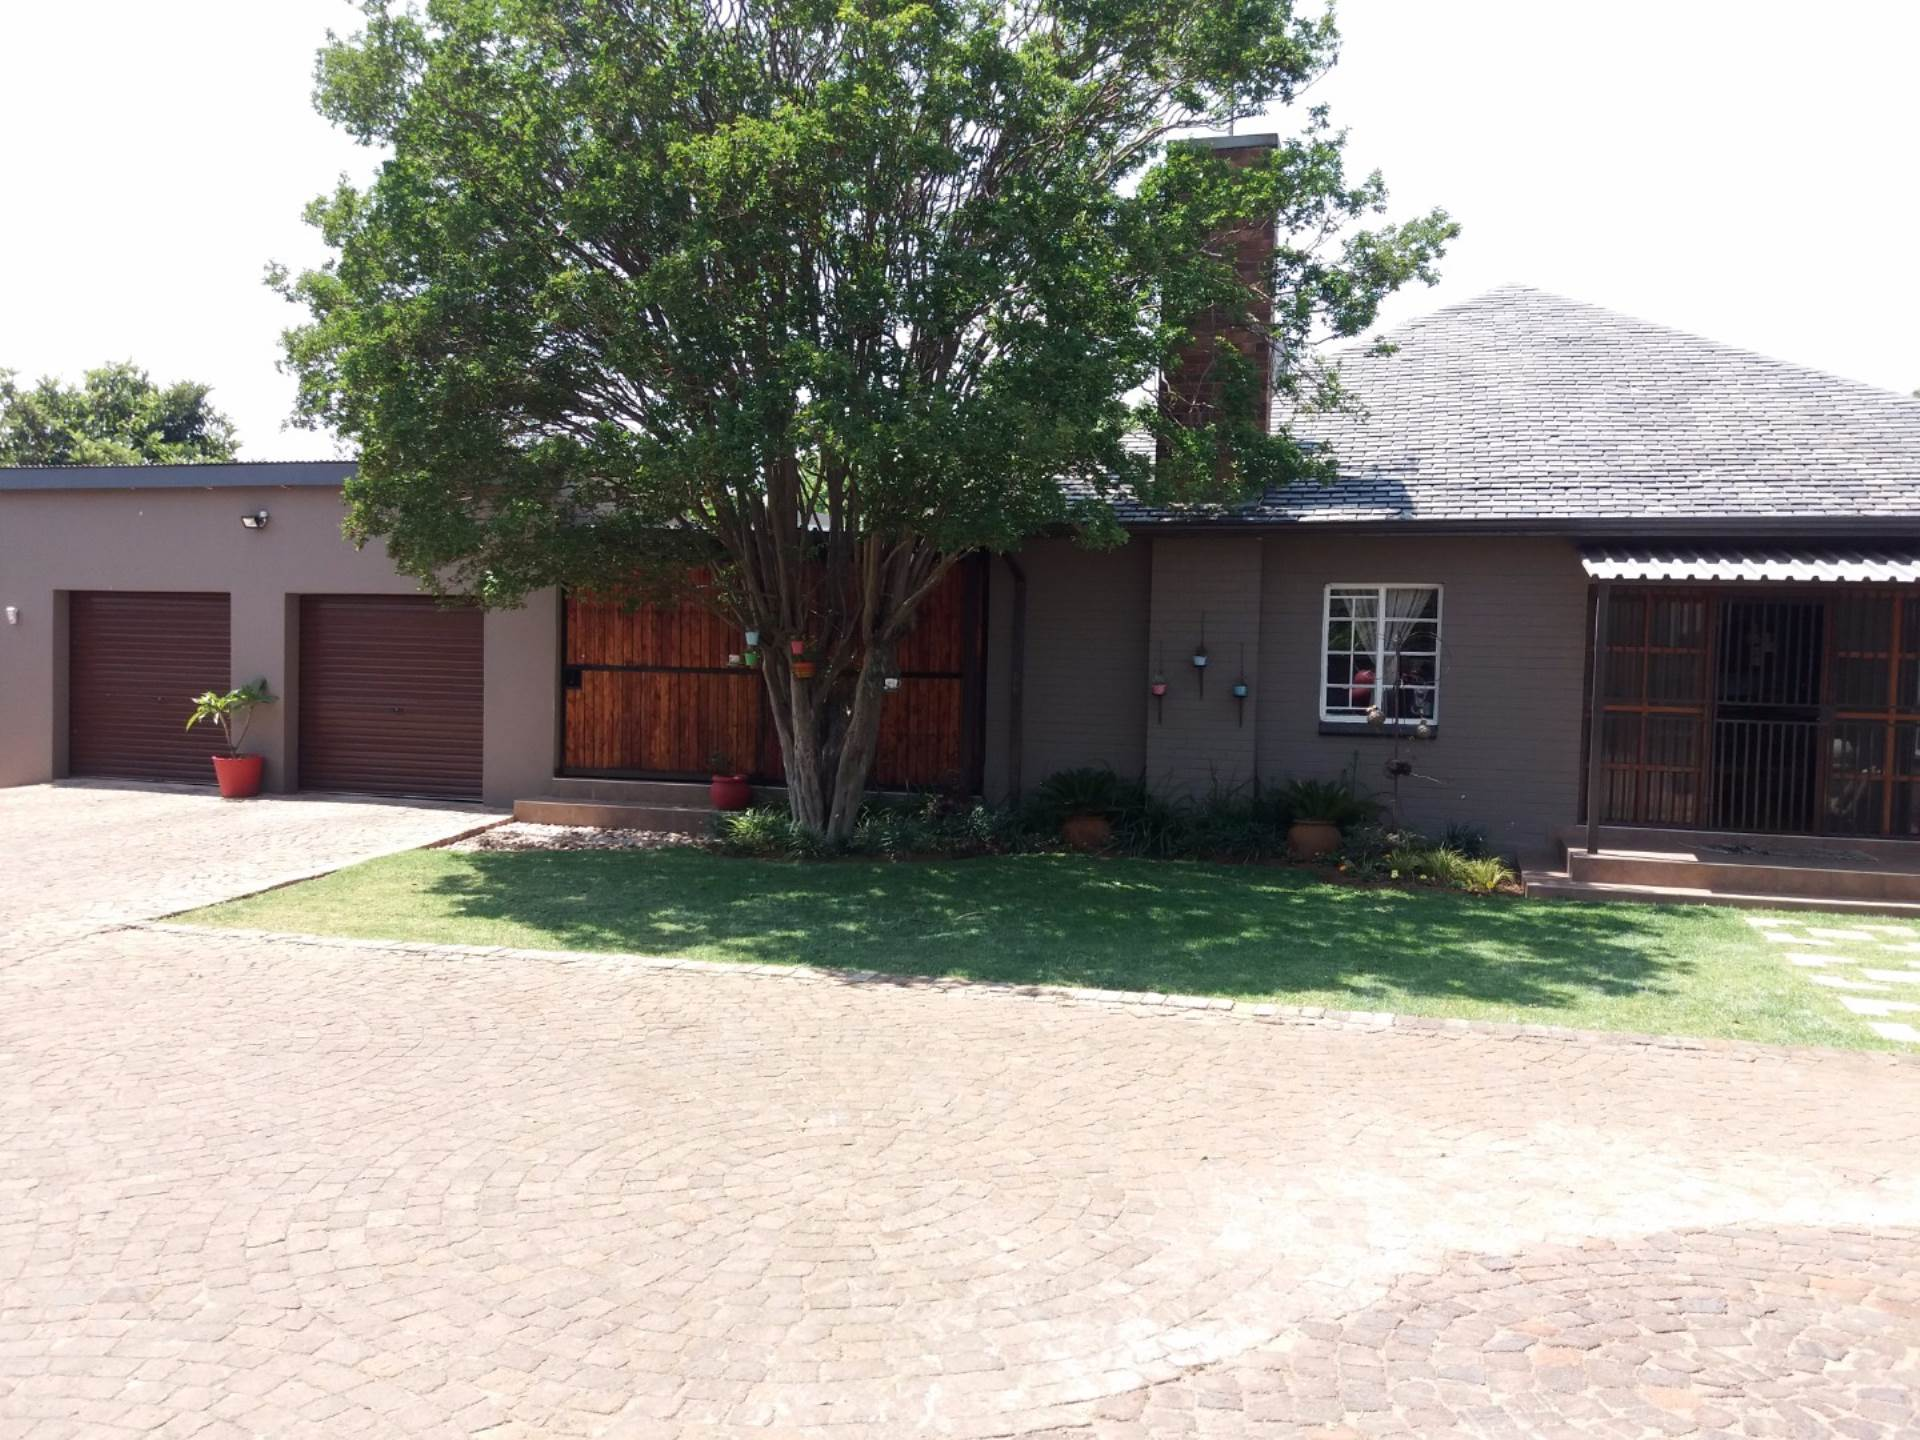 4 BedroomHouse To Rent In Rowhill